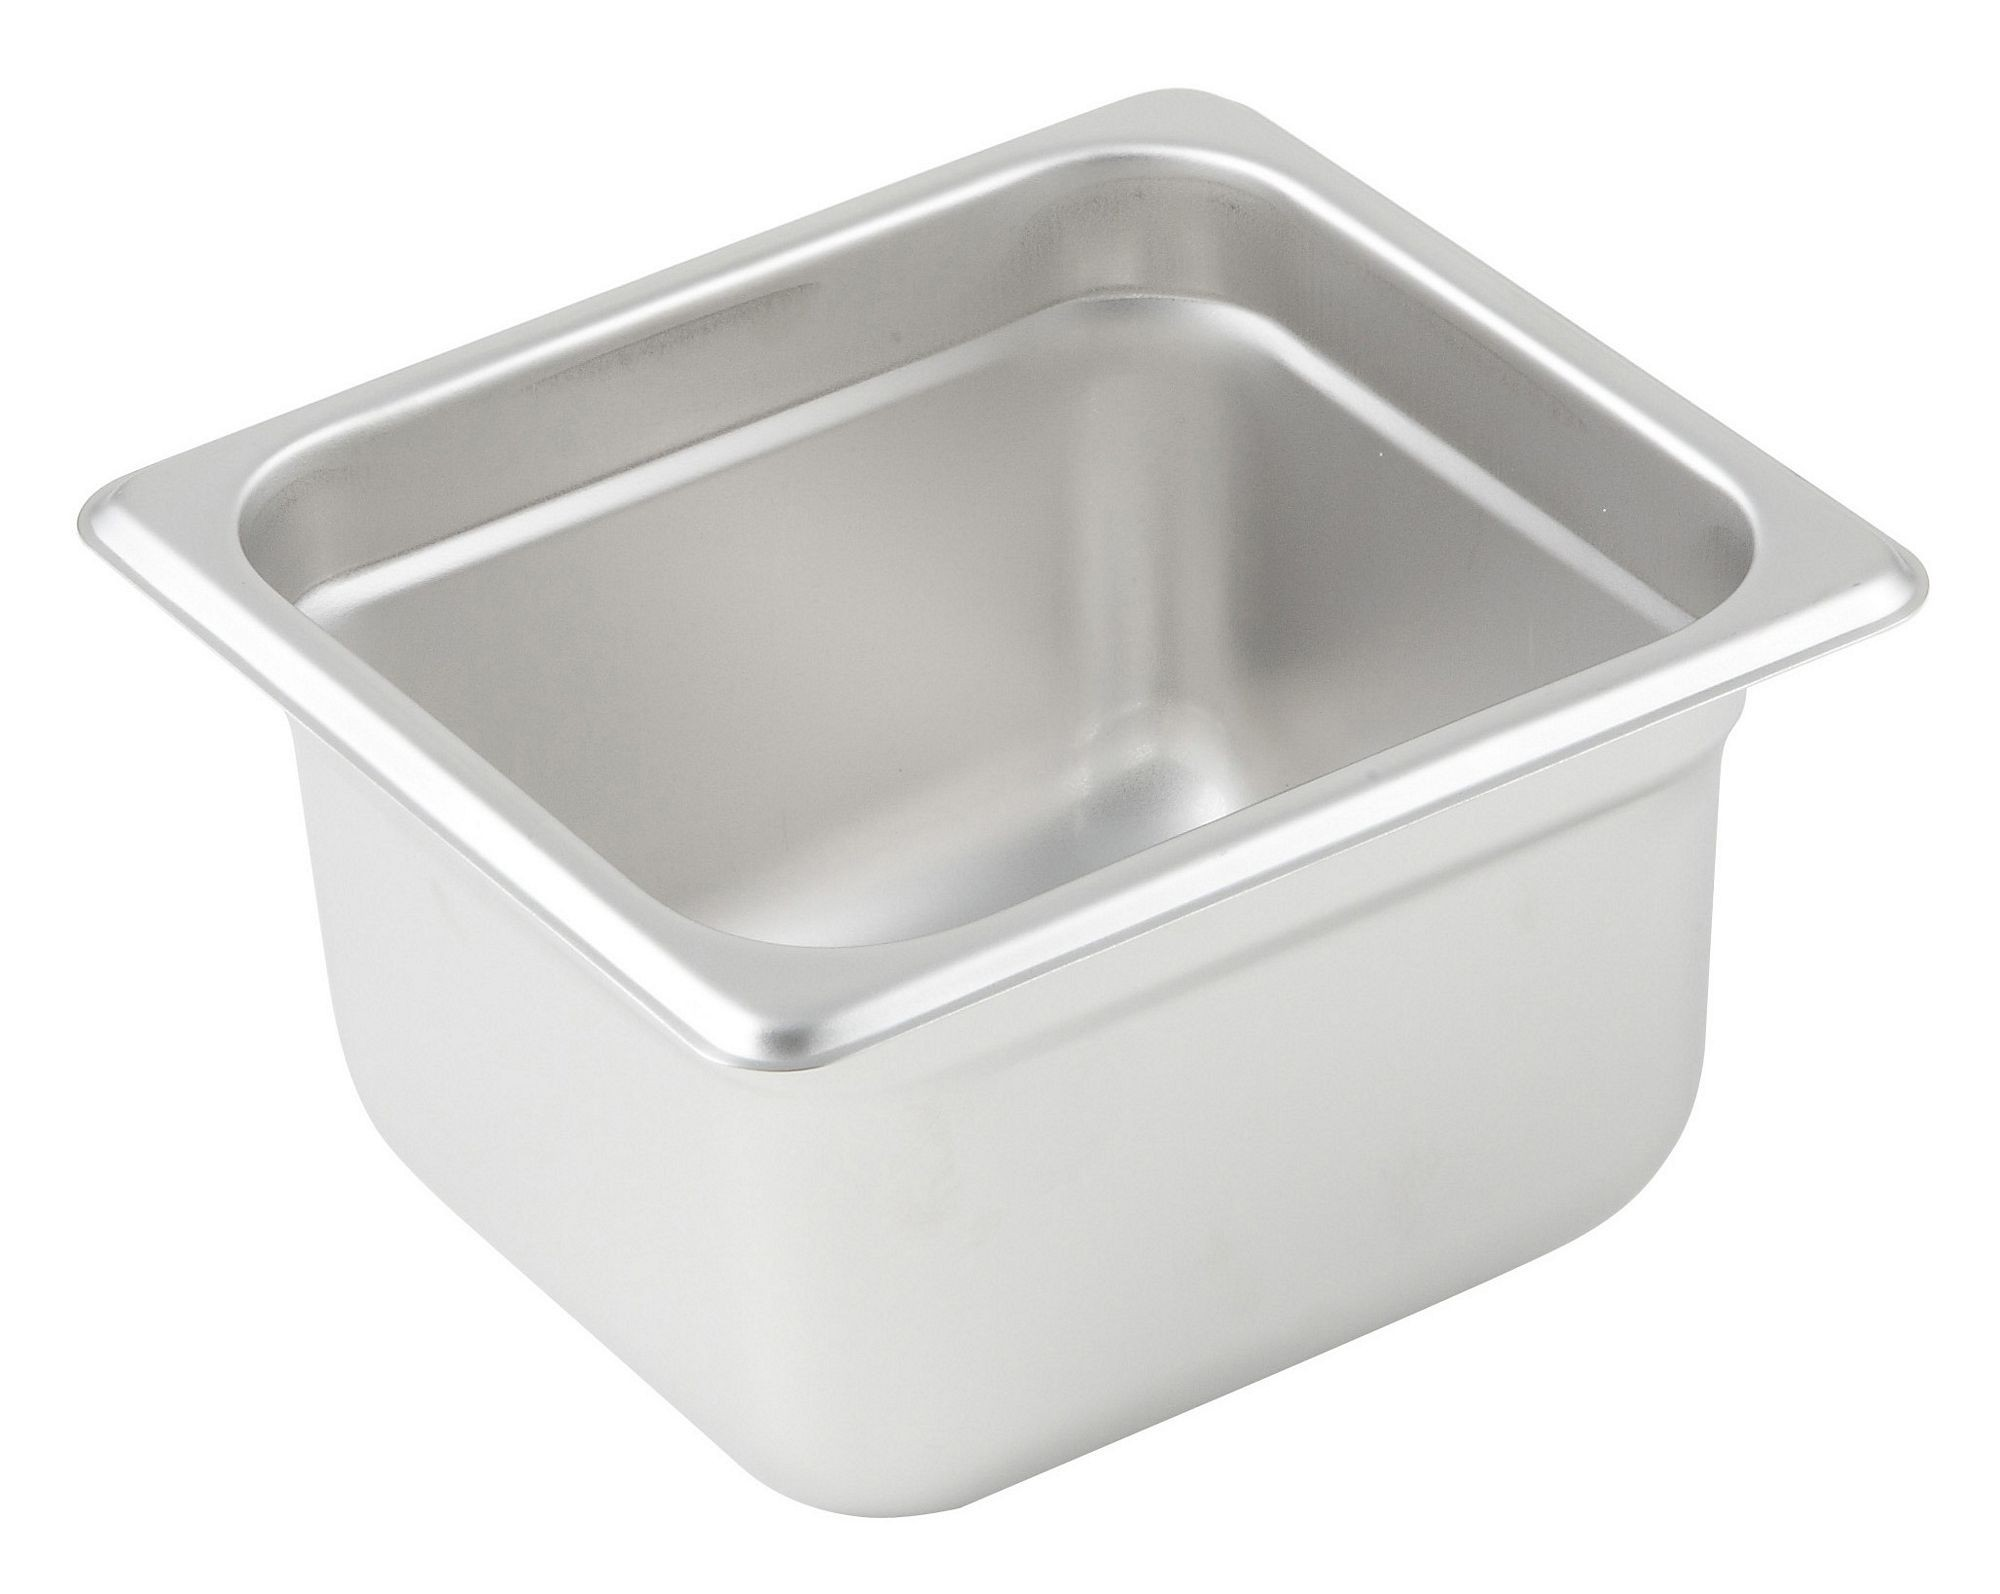 "Winco SPJM-604 1/6 Size Anti-Jam 24 Gauge Steam Table Pan 4"" Deep"